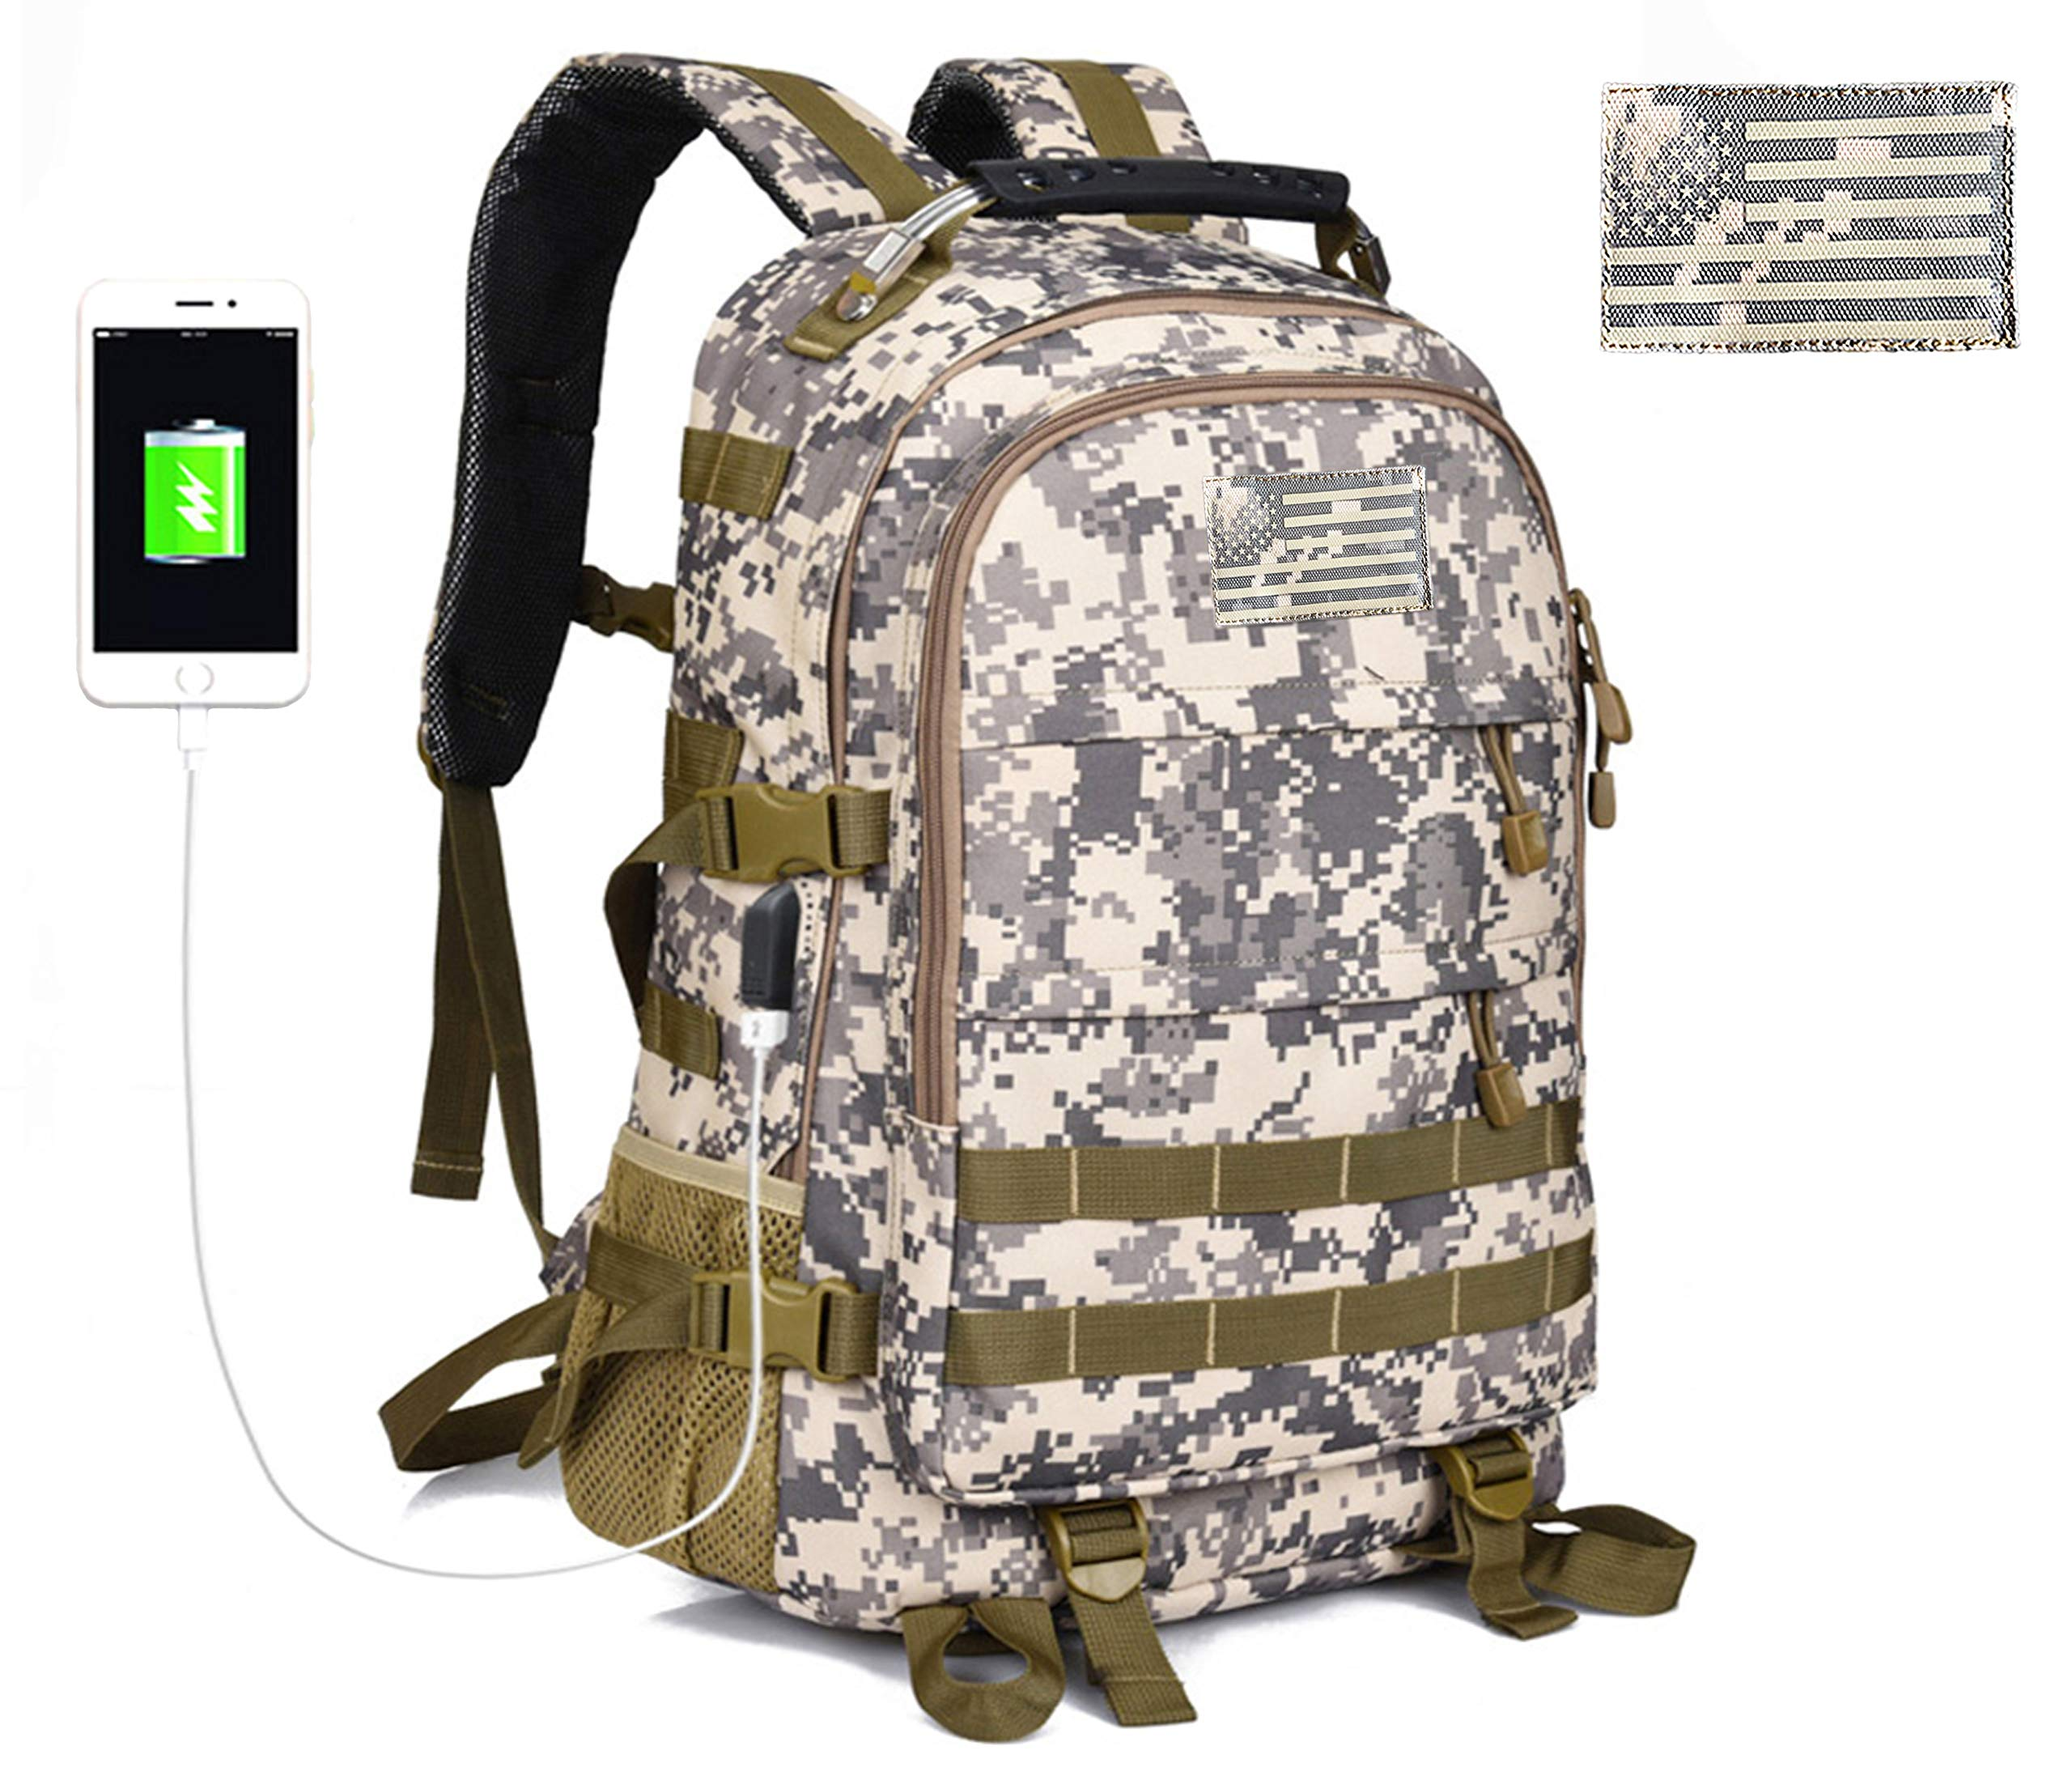 Military Tactical Backpack for Men Outdoor Hunting Backpack Travel Laptop  Bag Assault Pack Army Molle Bug Out Rucksack w USB Charging for Motorcycle 6acf5f2fc1675